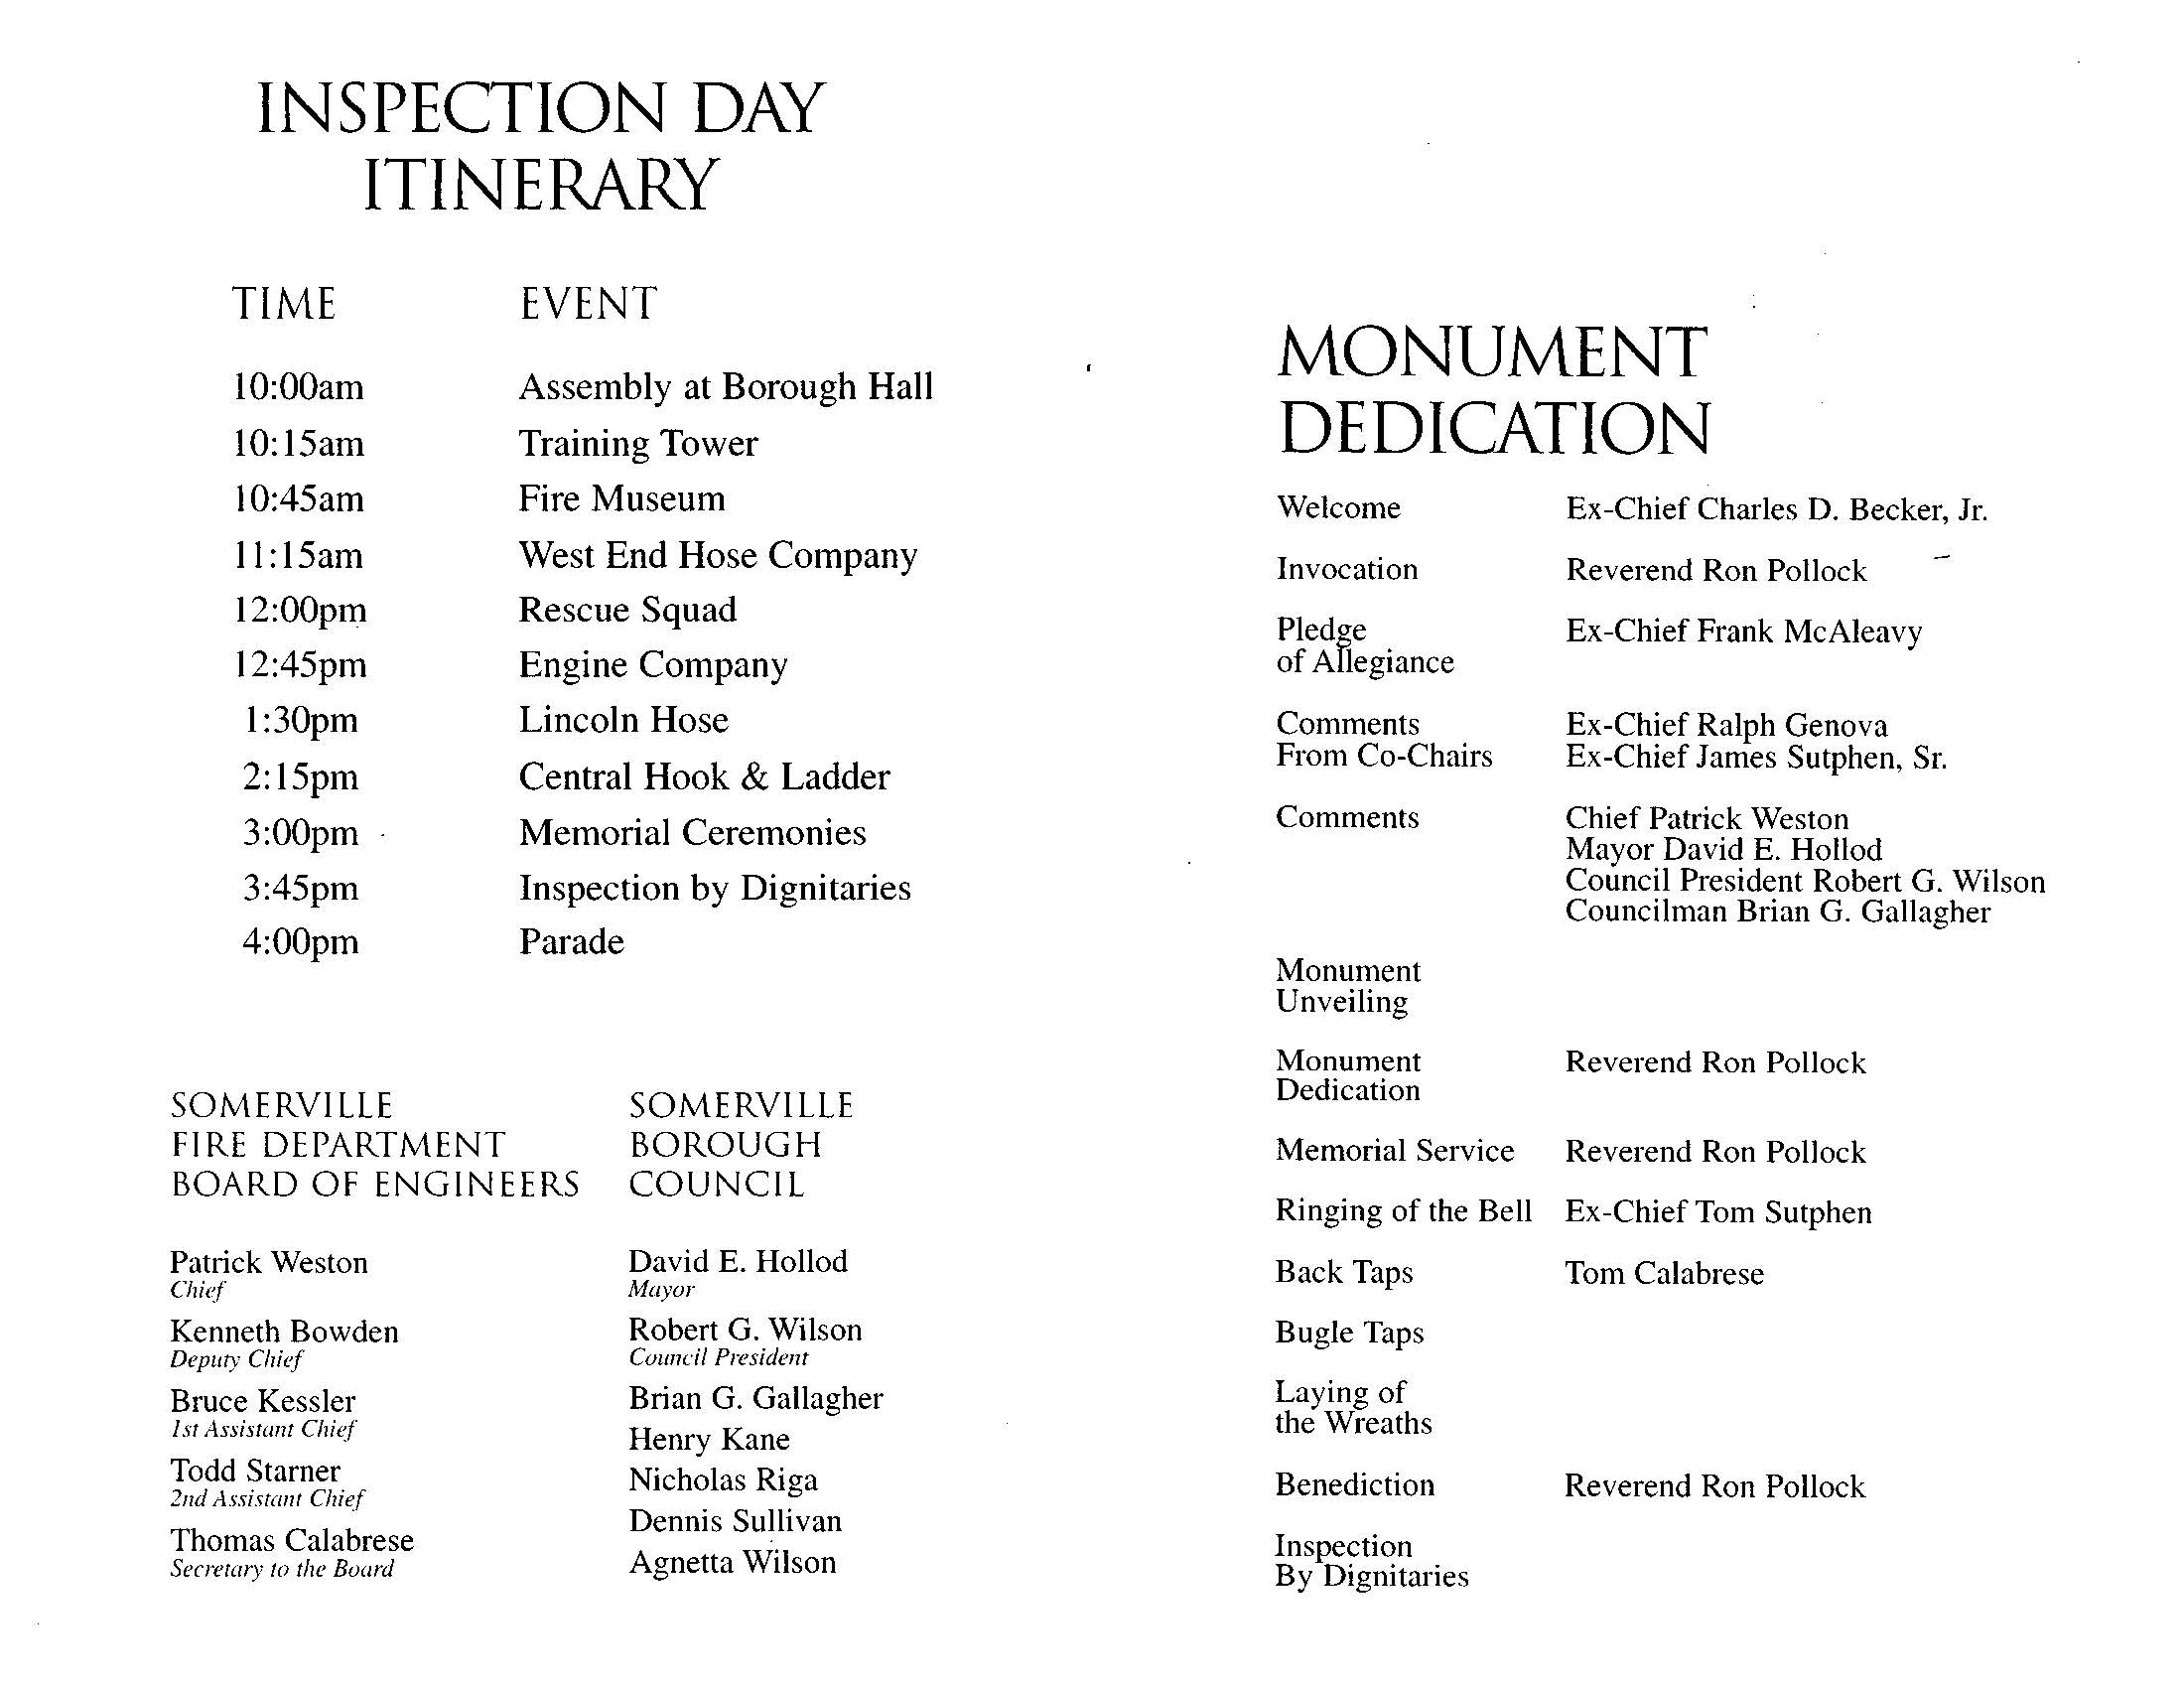 2002 Monument Dedication & Inspection day parade.pamhlet_Page_2_Image_0001.jpg